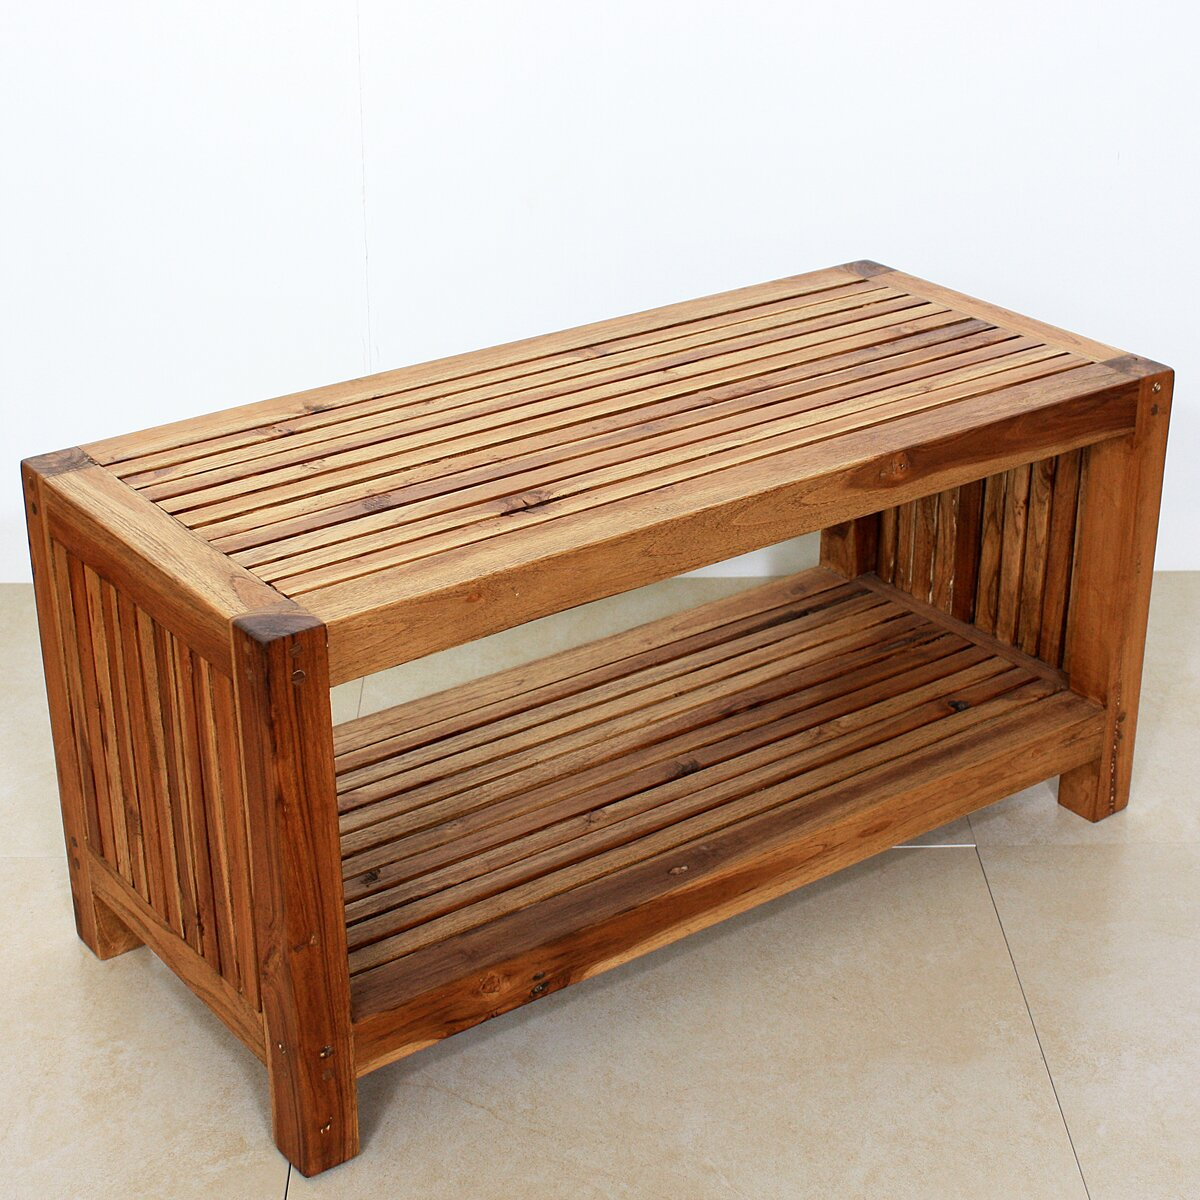 Teak Oil Coffee Table: Strata Furniture Teak Slat Coffee Table & Reviews